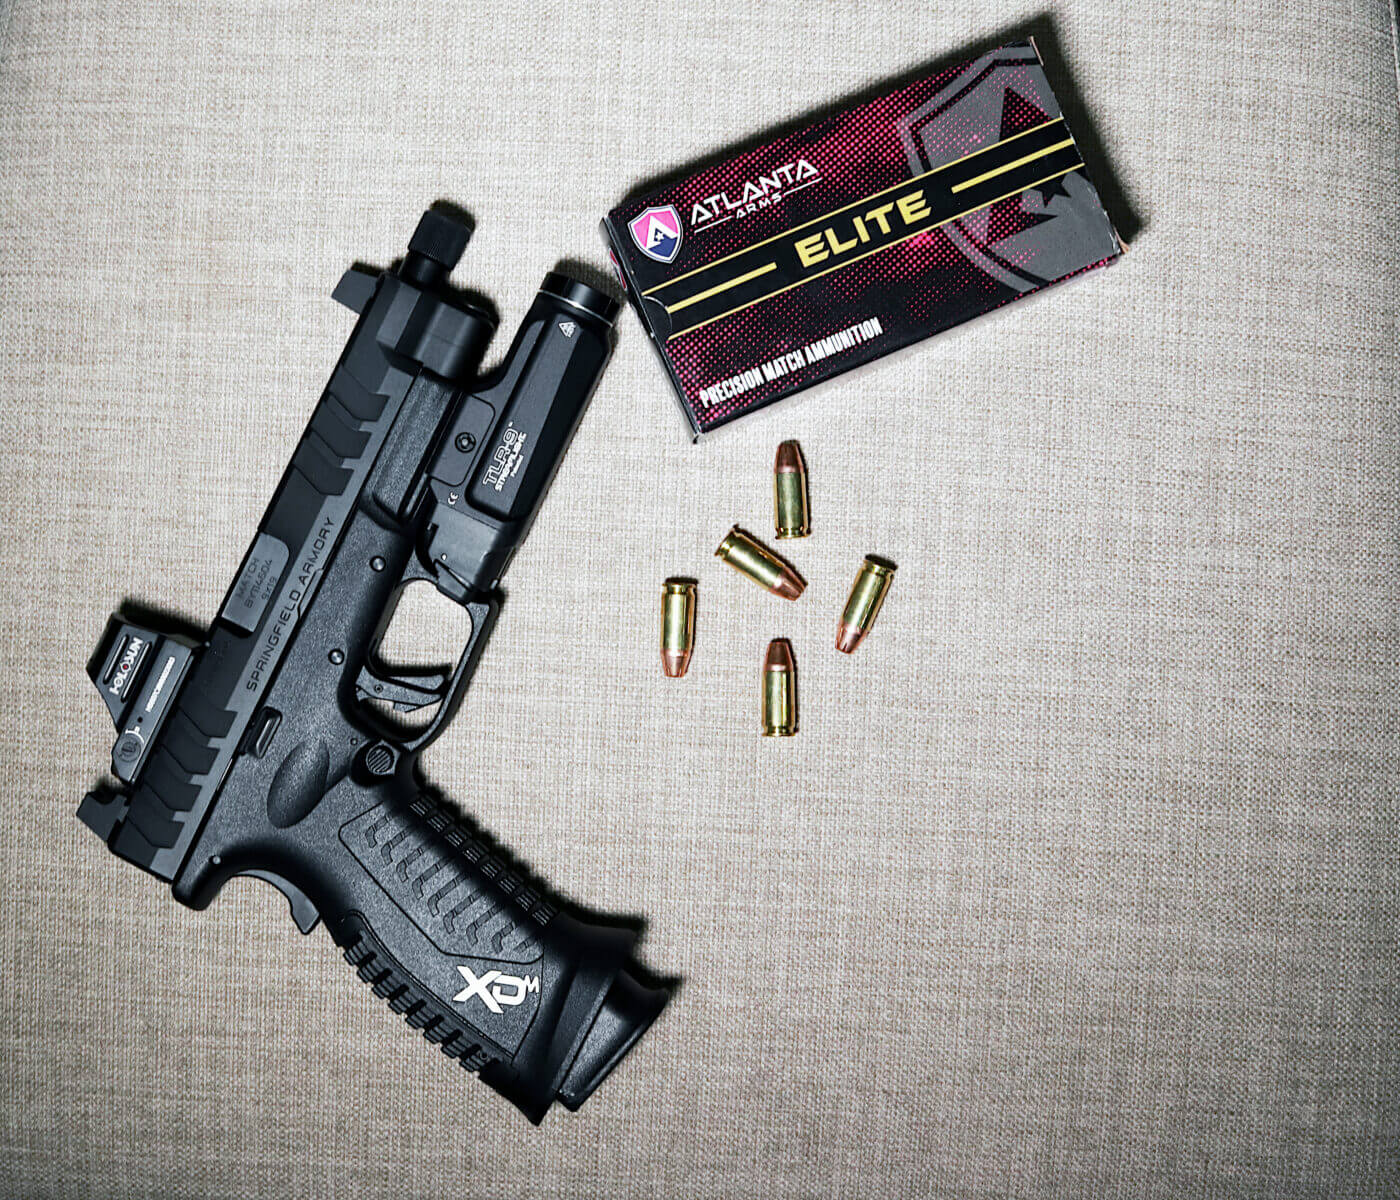 Atlanta Arms Match 9mm ammo in Springfield Armory XD-M Elite OSP pistol